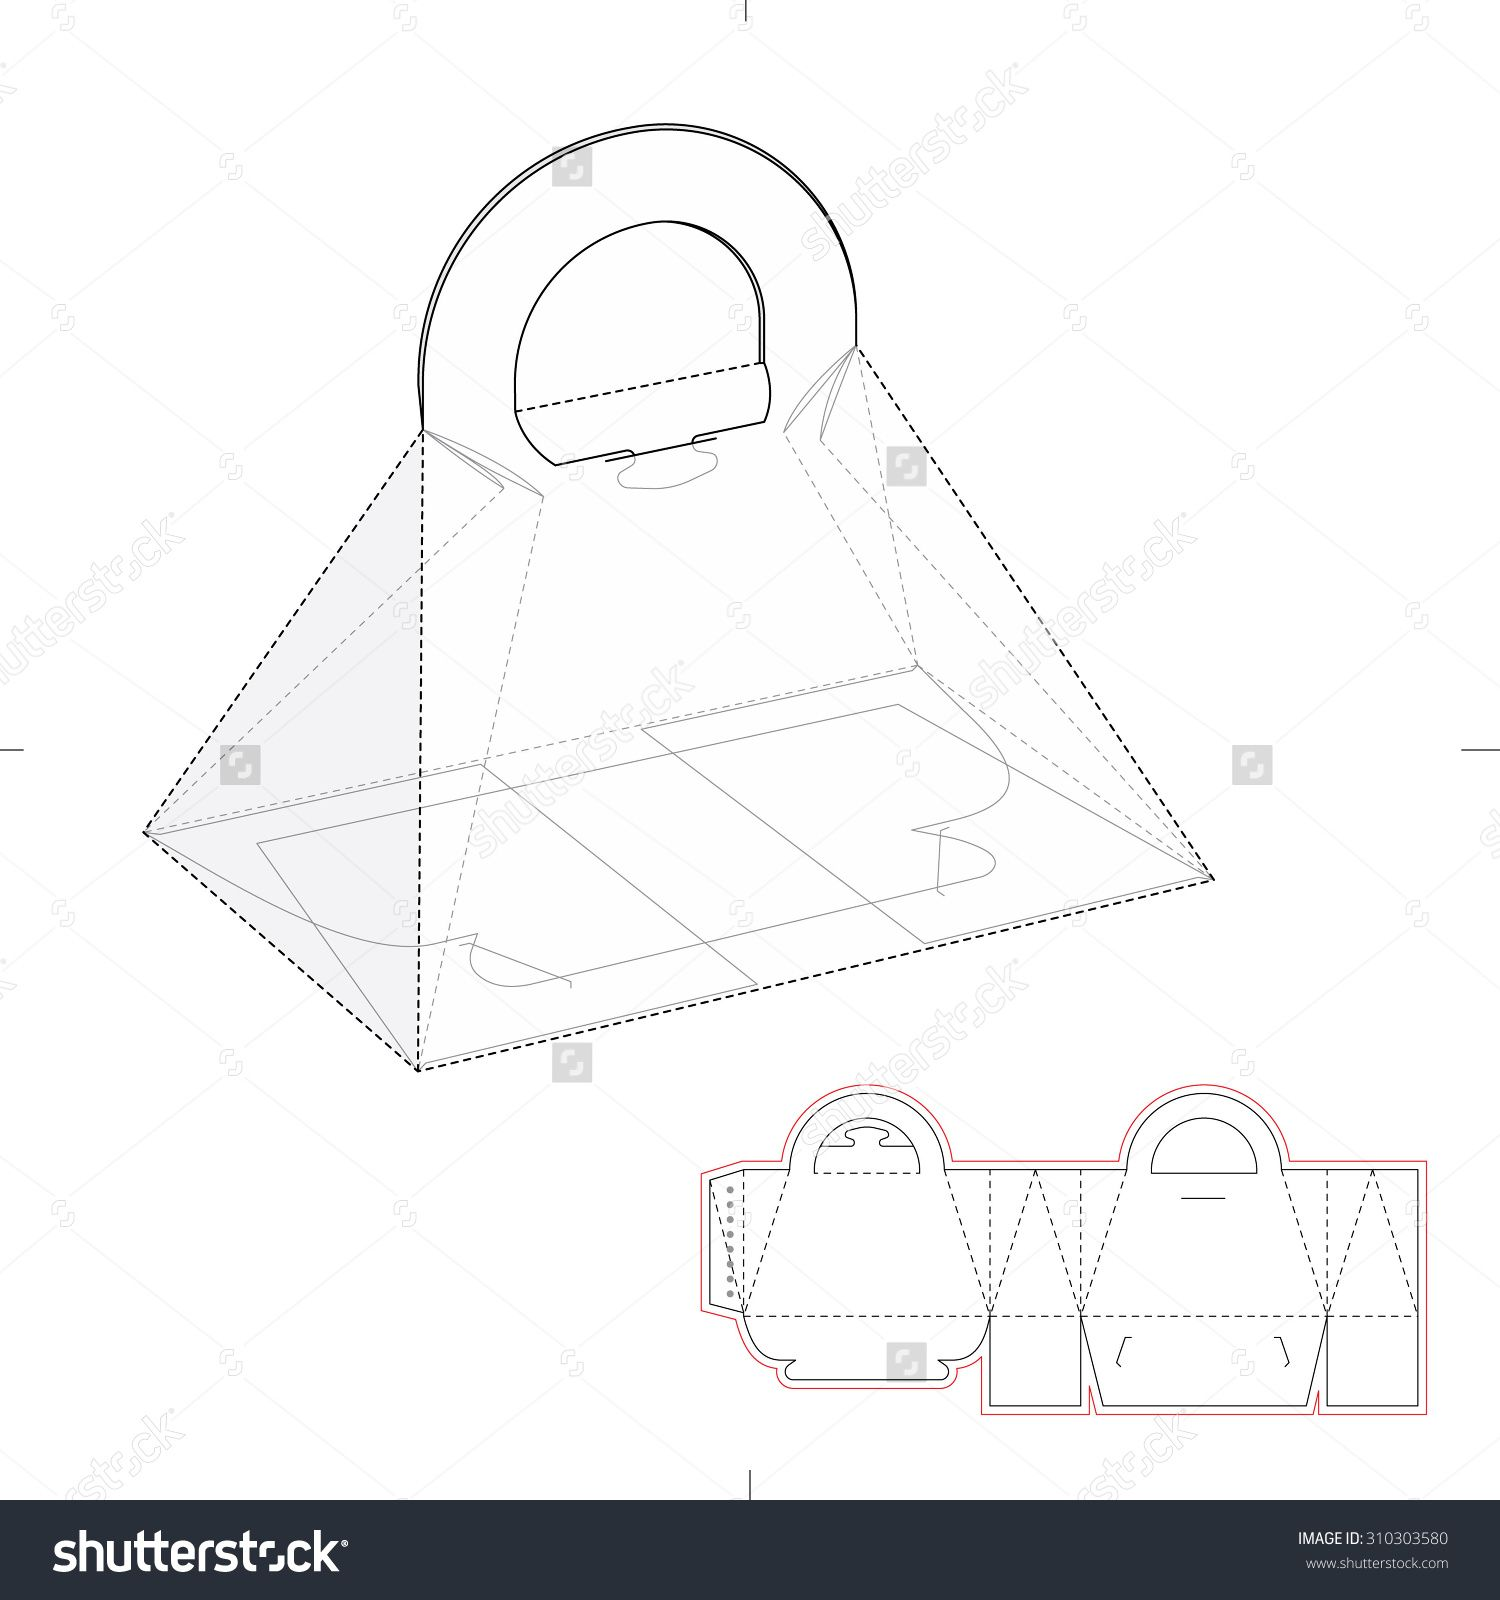 Pyramid Carrying Box With Die Line Template Stock Vector